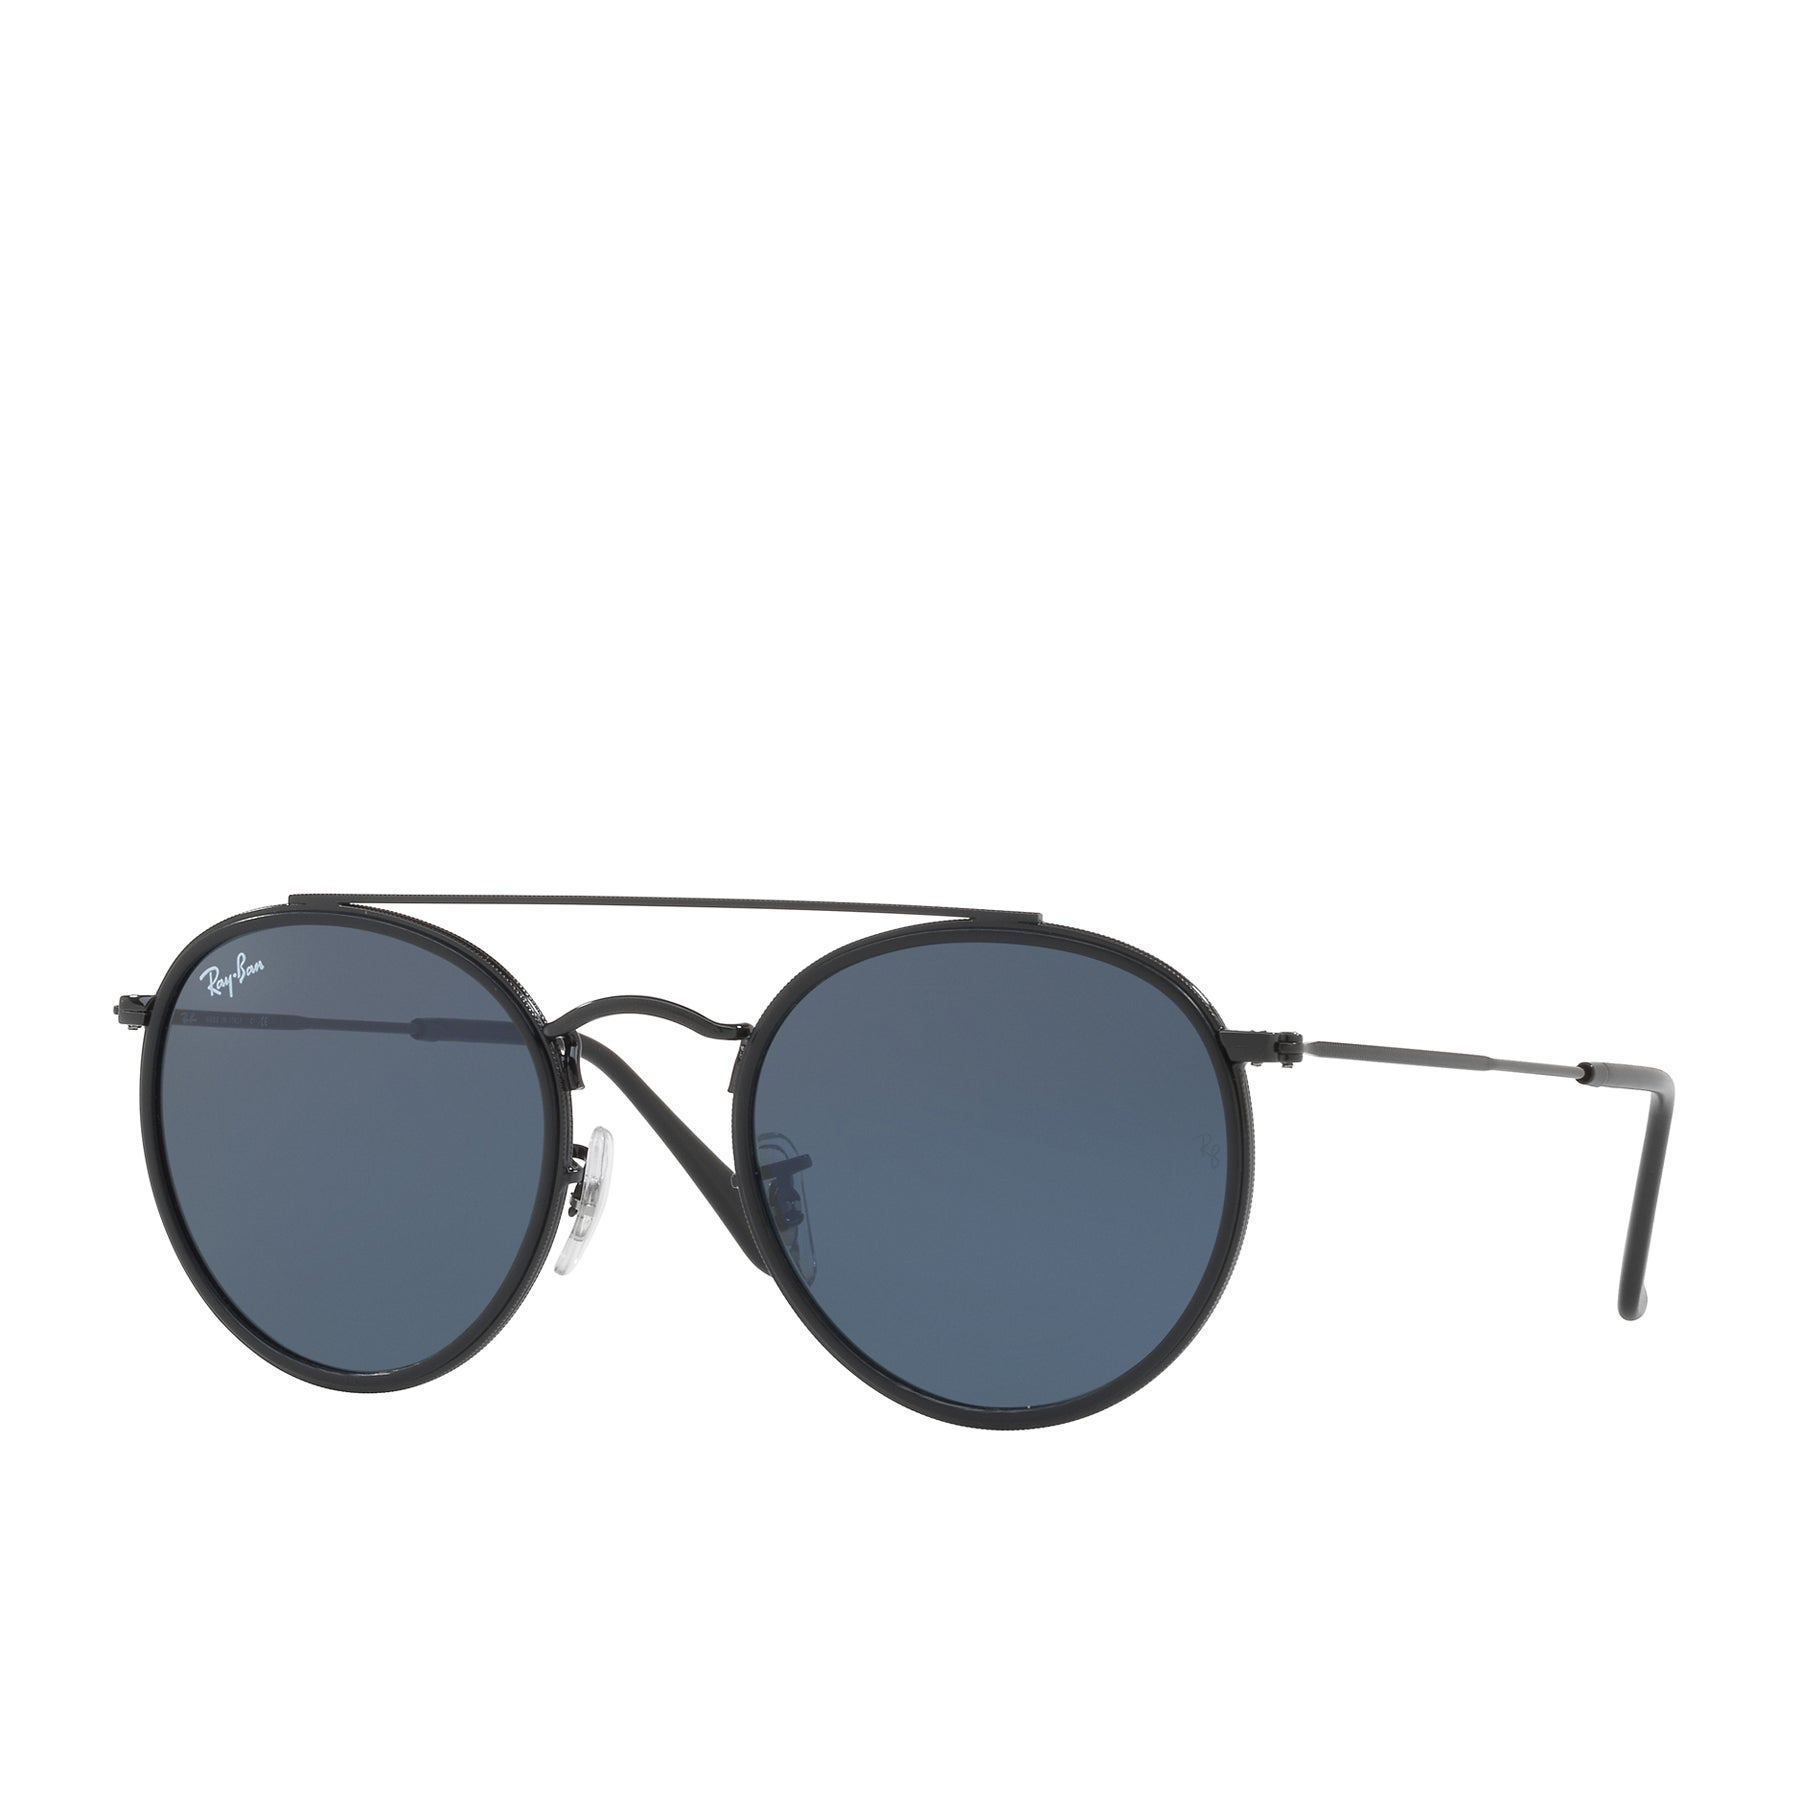 ecf5235c4 Solbriller ray ban dame